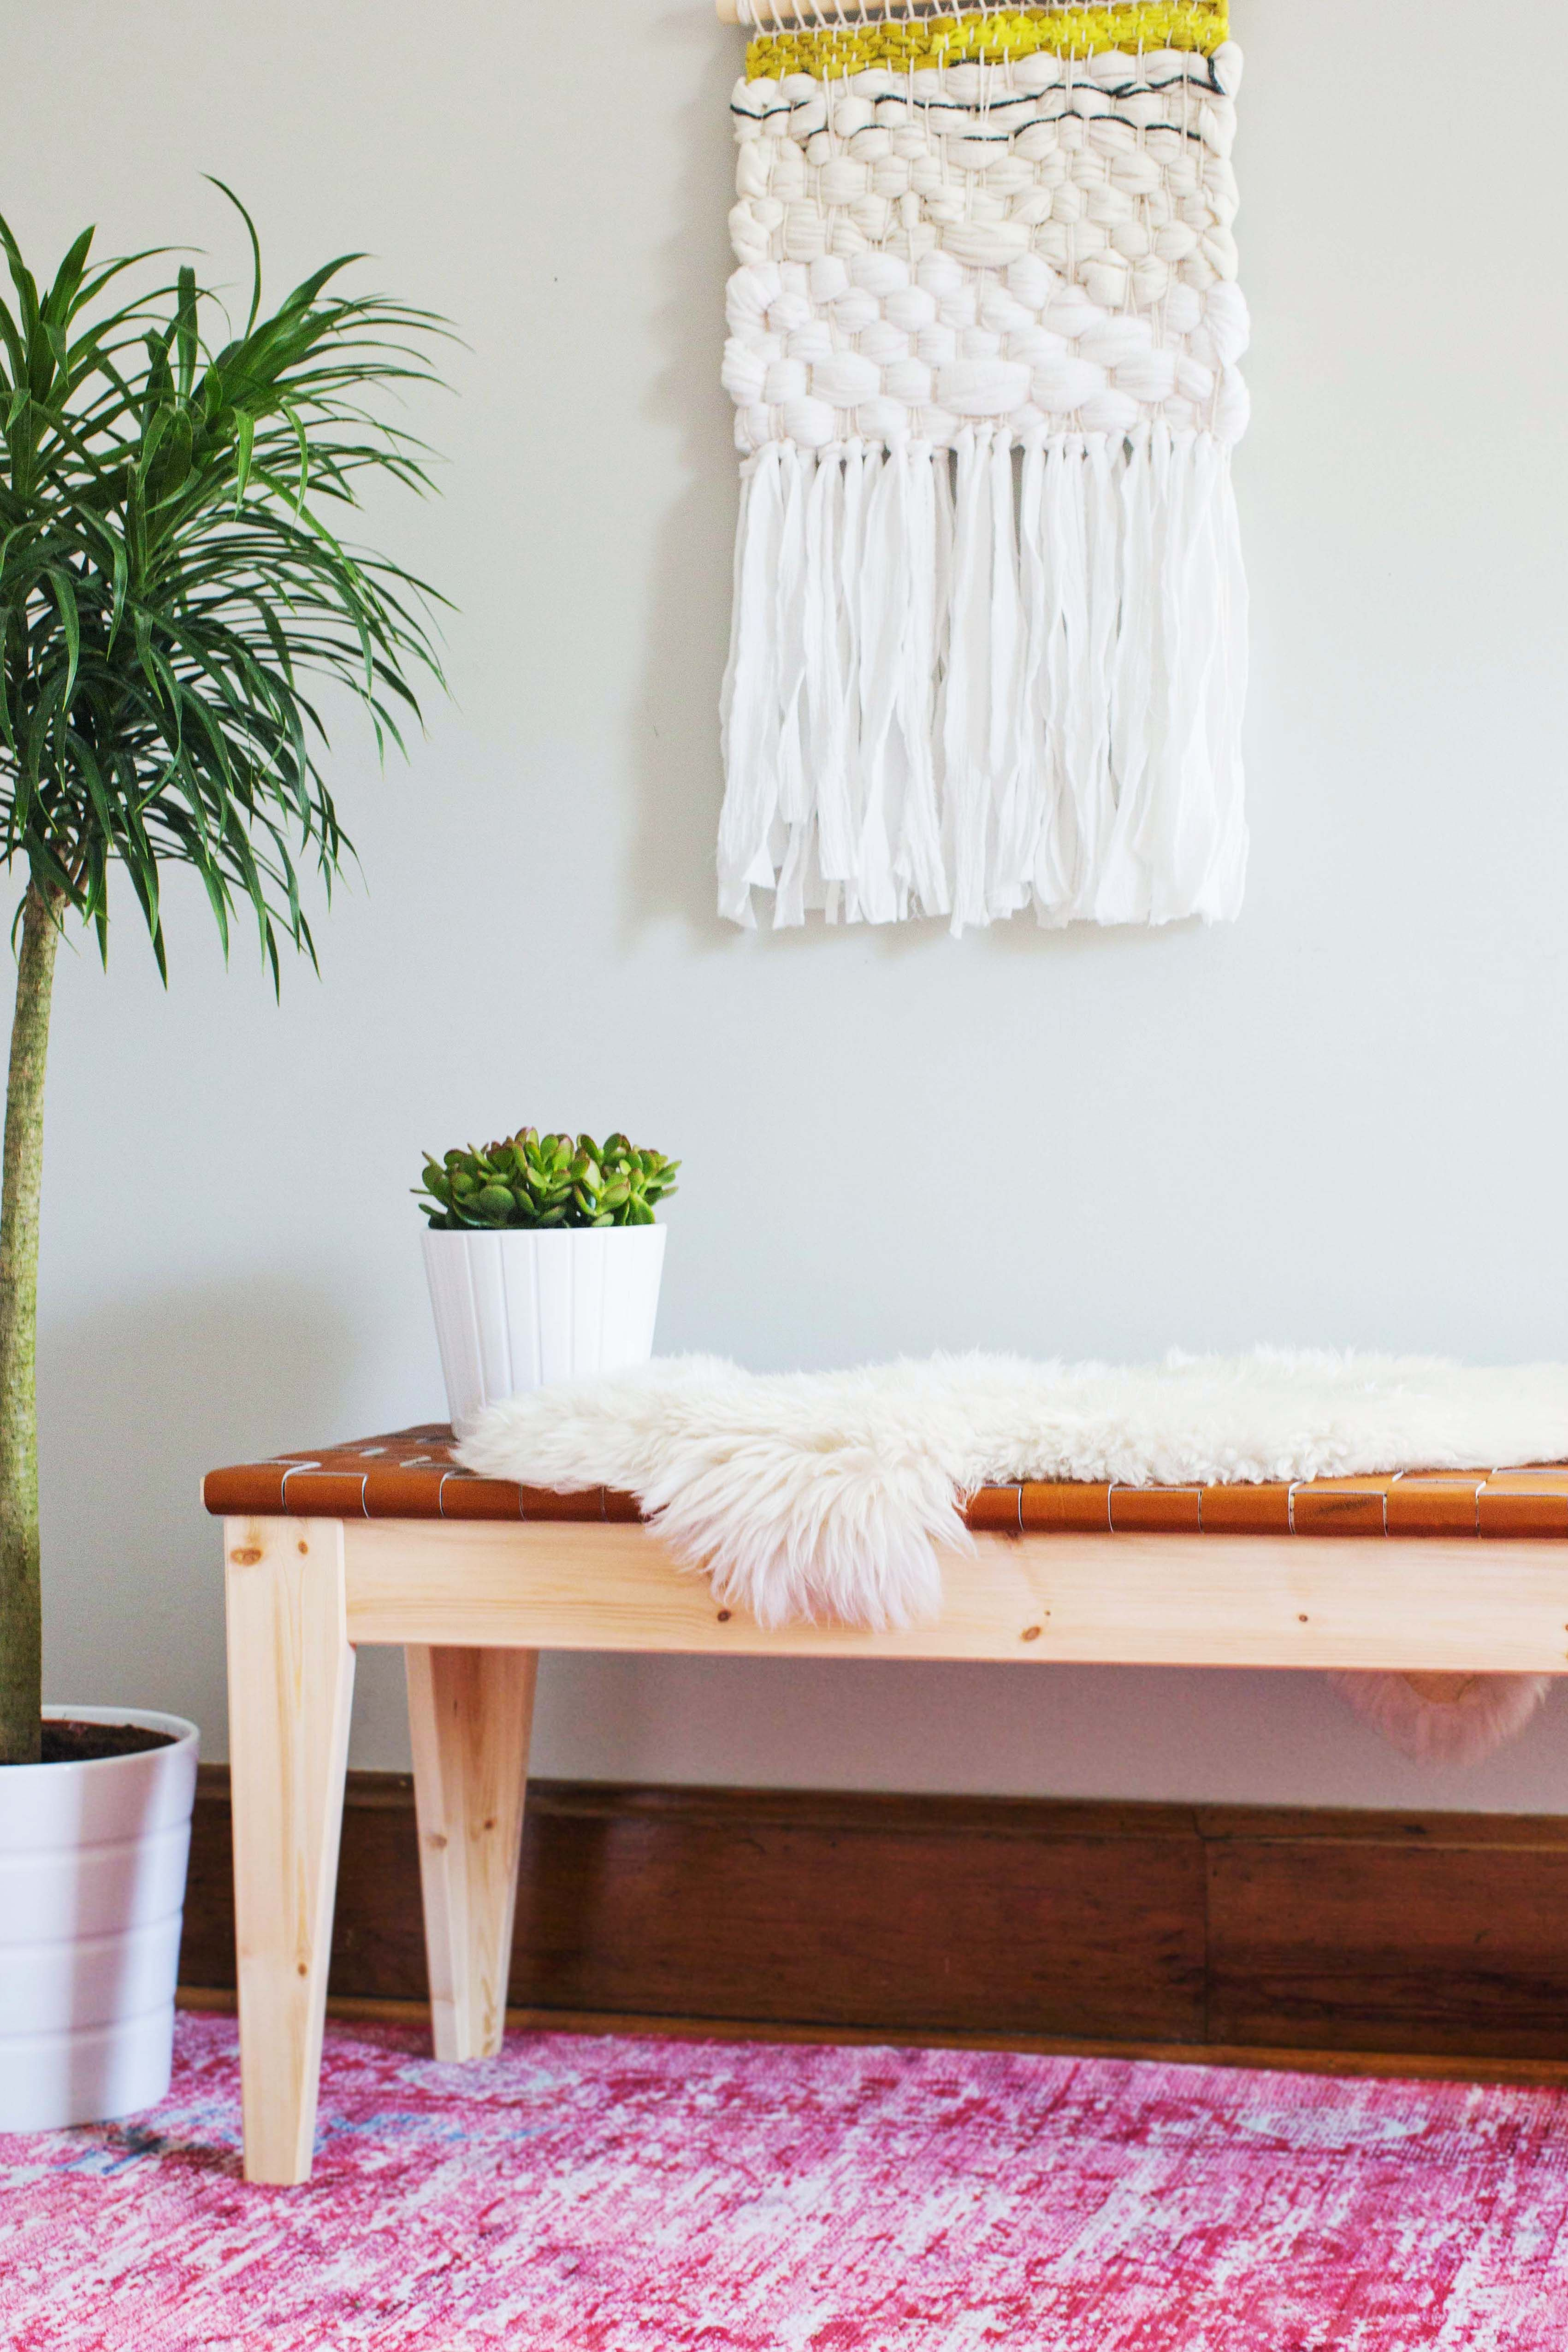 Luxe Looks on a Budget: Super Stylish DIY Leather Accents ...